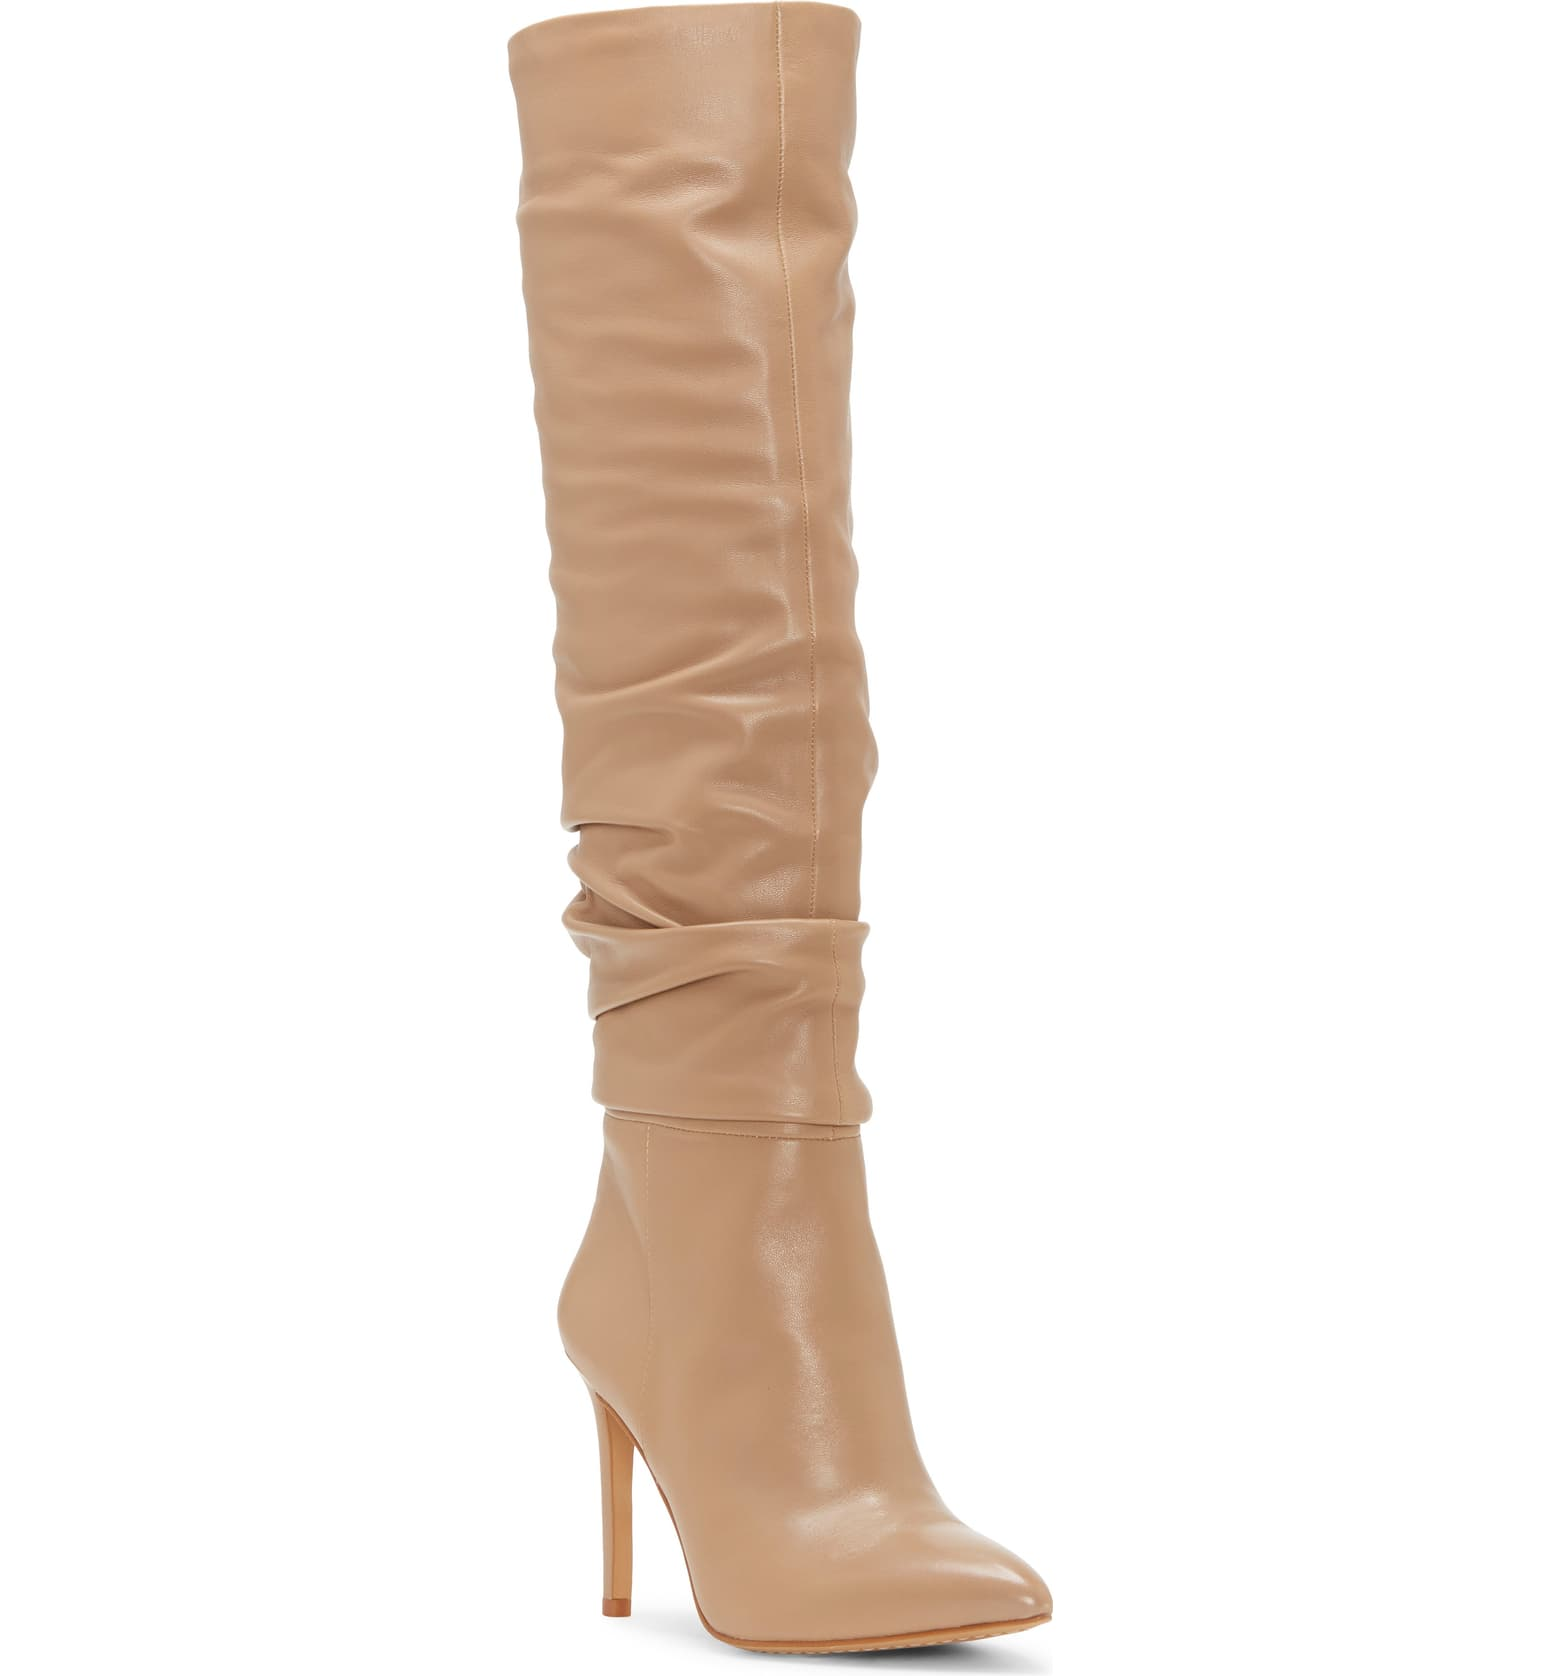 Over the knee kashiana boot in tan leather has ultra stunning vibes for Fall 2019 boots.